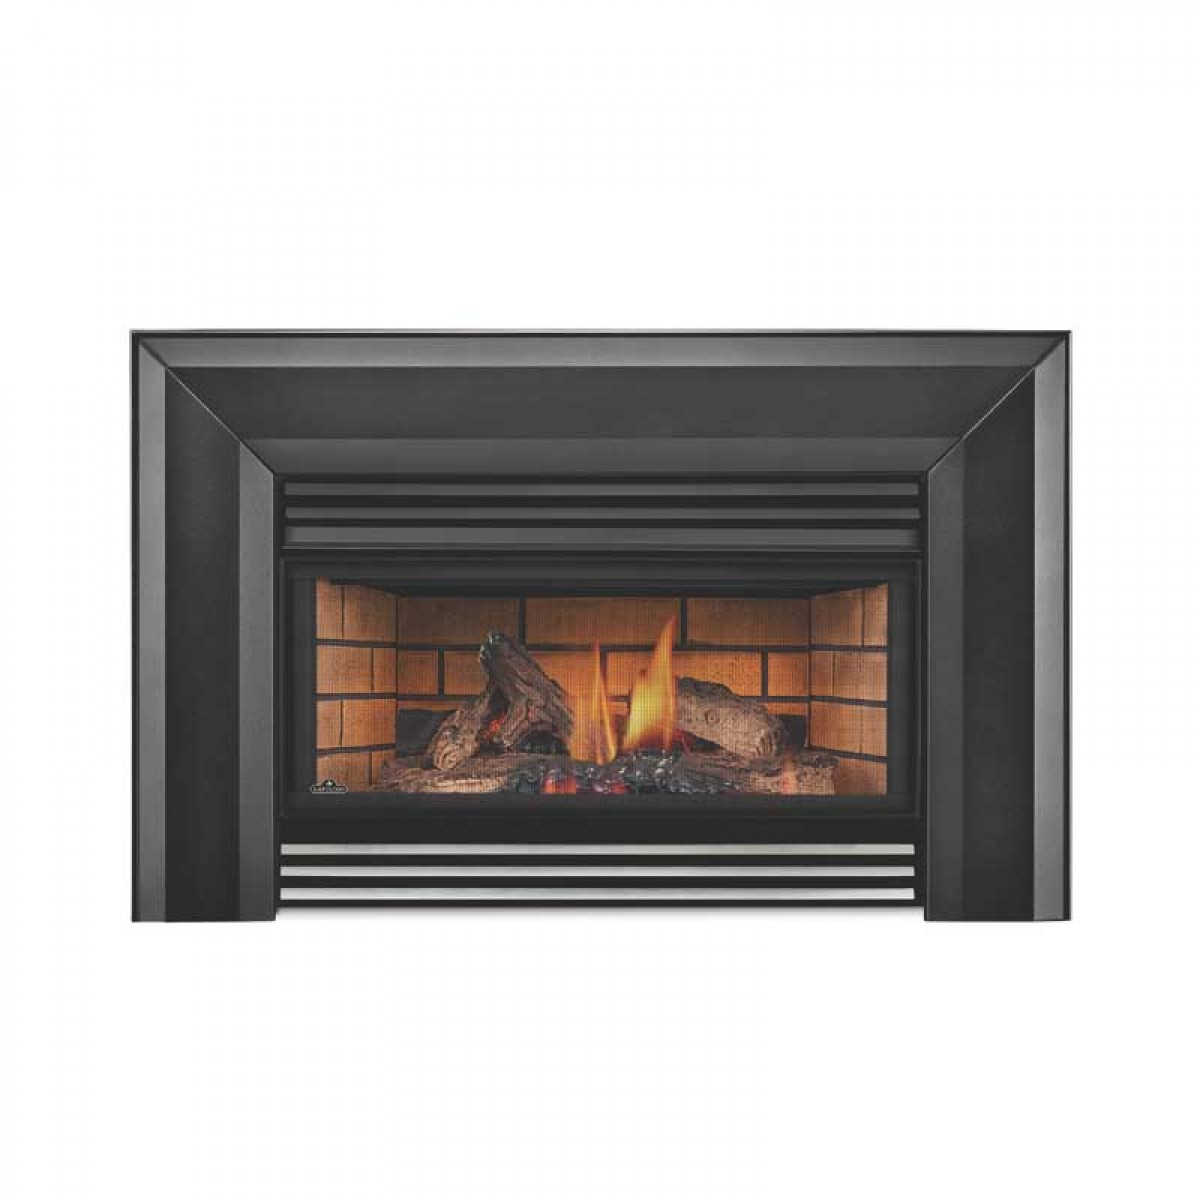 Napoleon Gi3600 4n Basic Natural Gas Fireplace Insert W Glass At Ibuyfireplaces